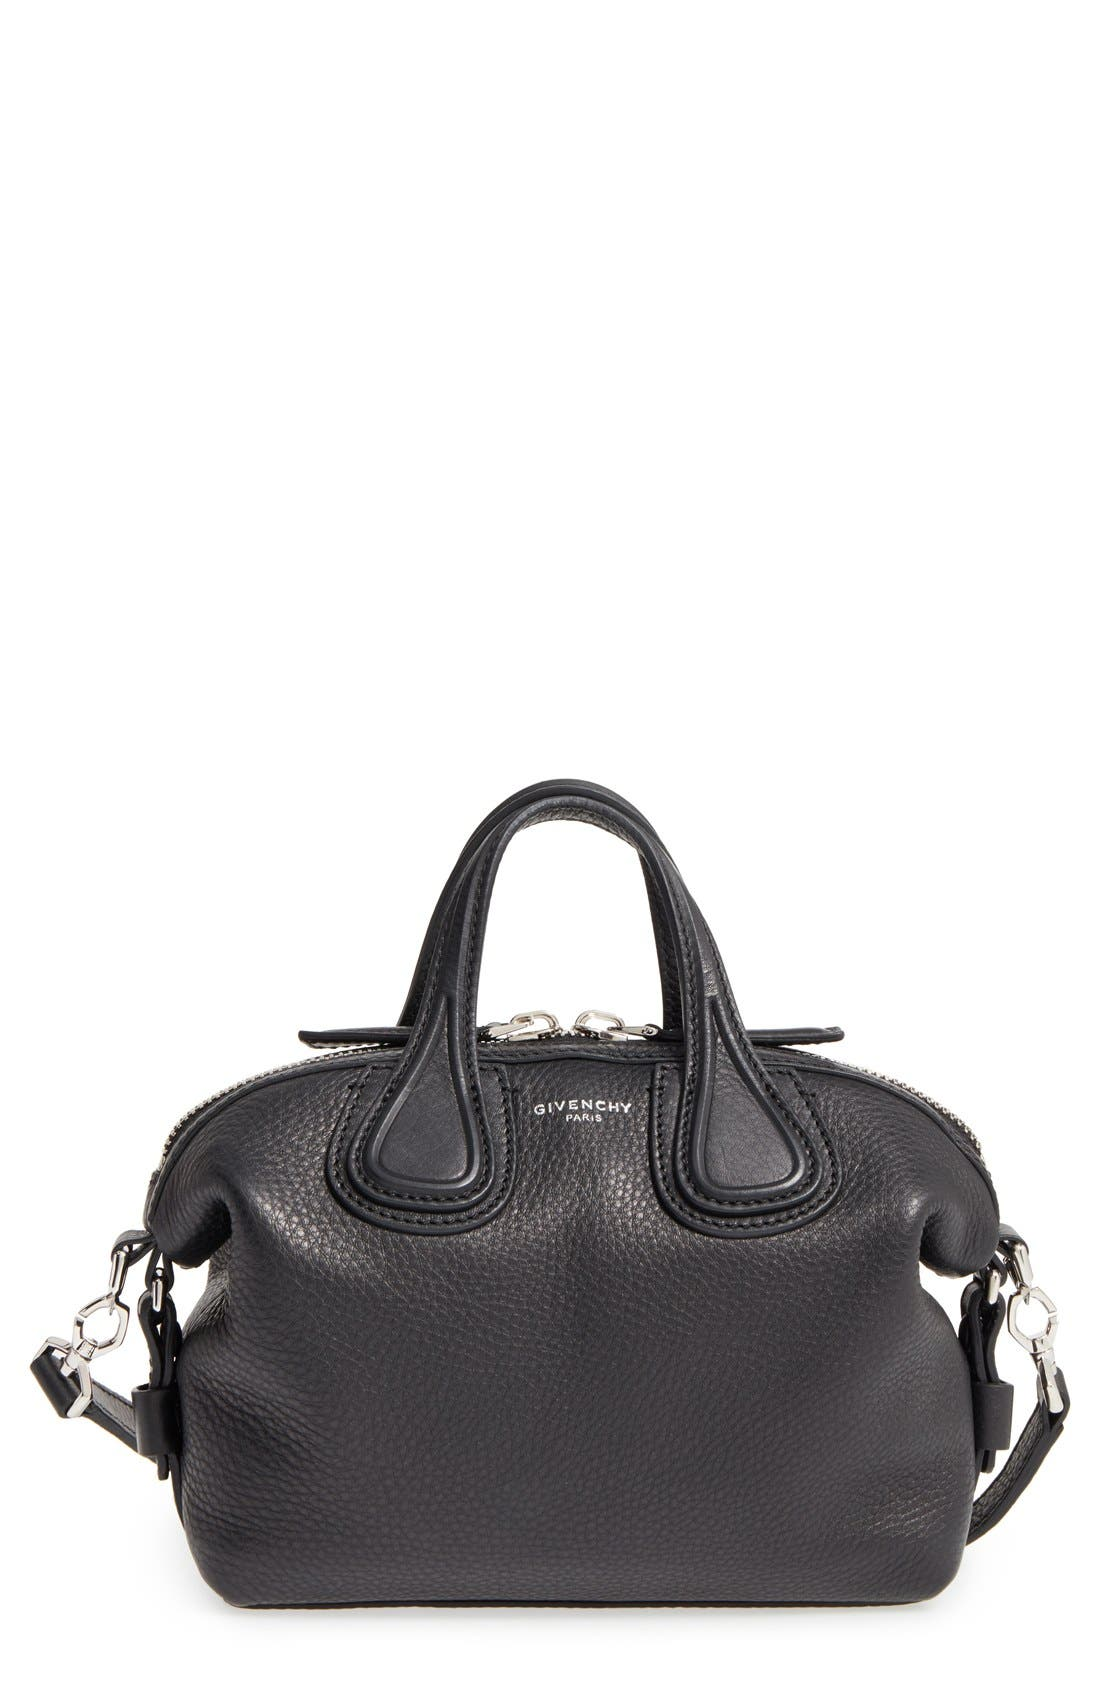 GIVENCHY, Micro Nightingale Leather Satchel, Main thumbnail 1, color, 001